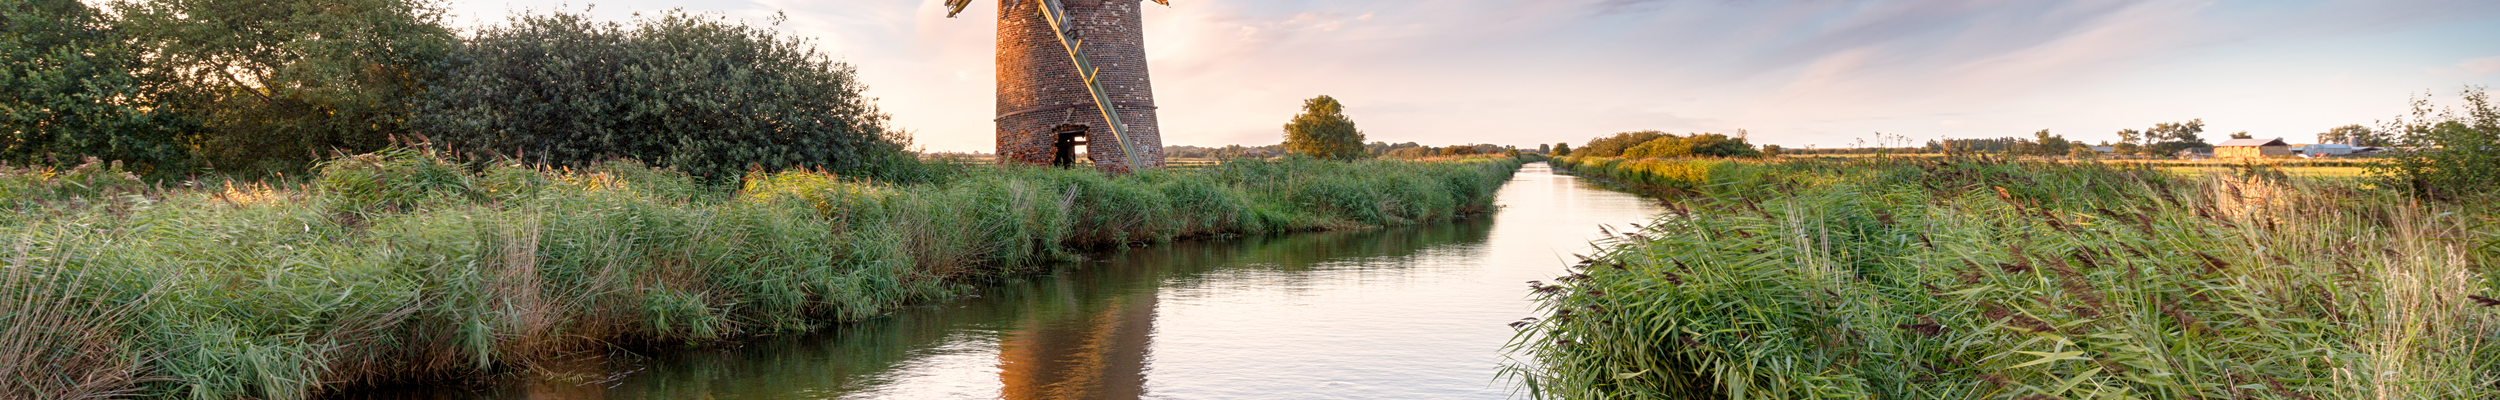 Places to Visit // A windmill on the banks of the Broads